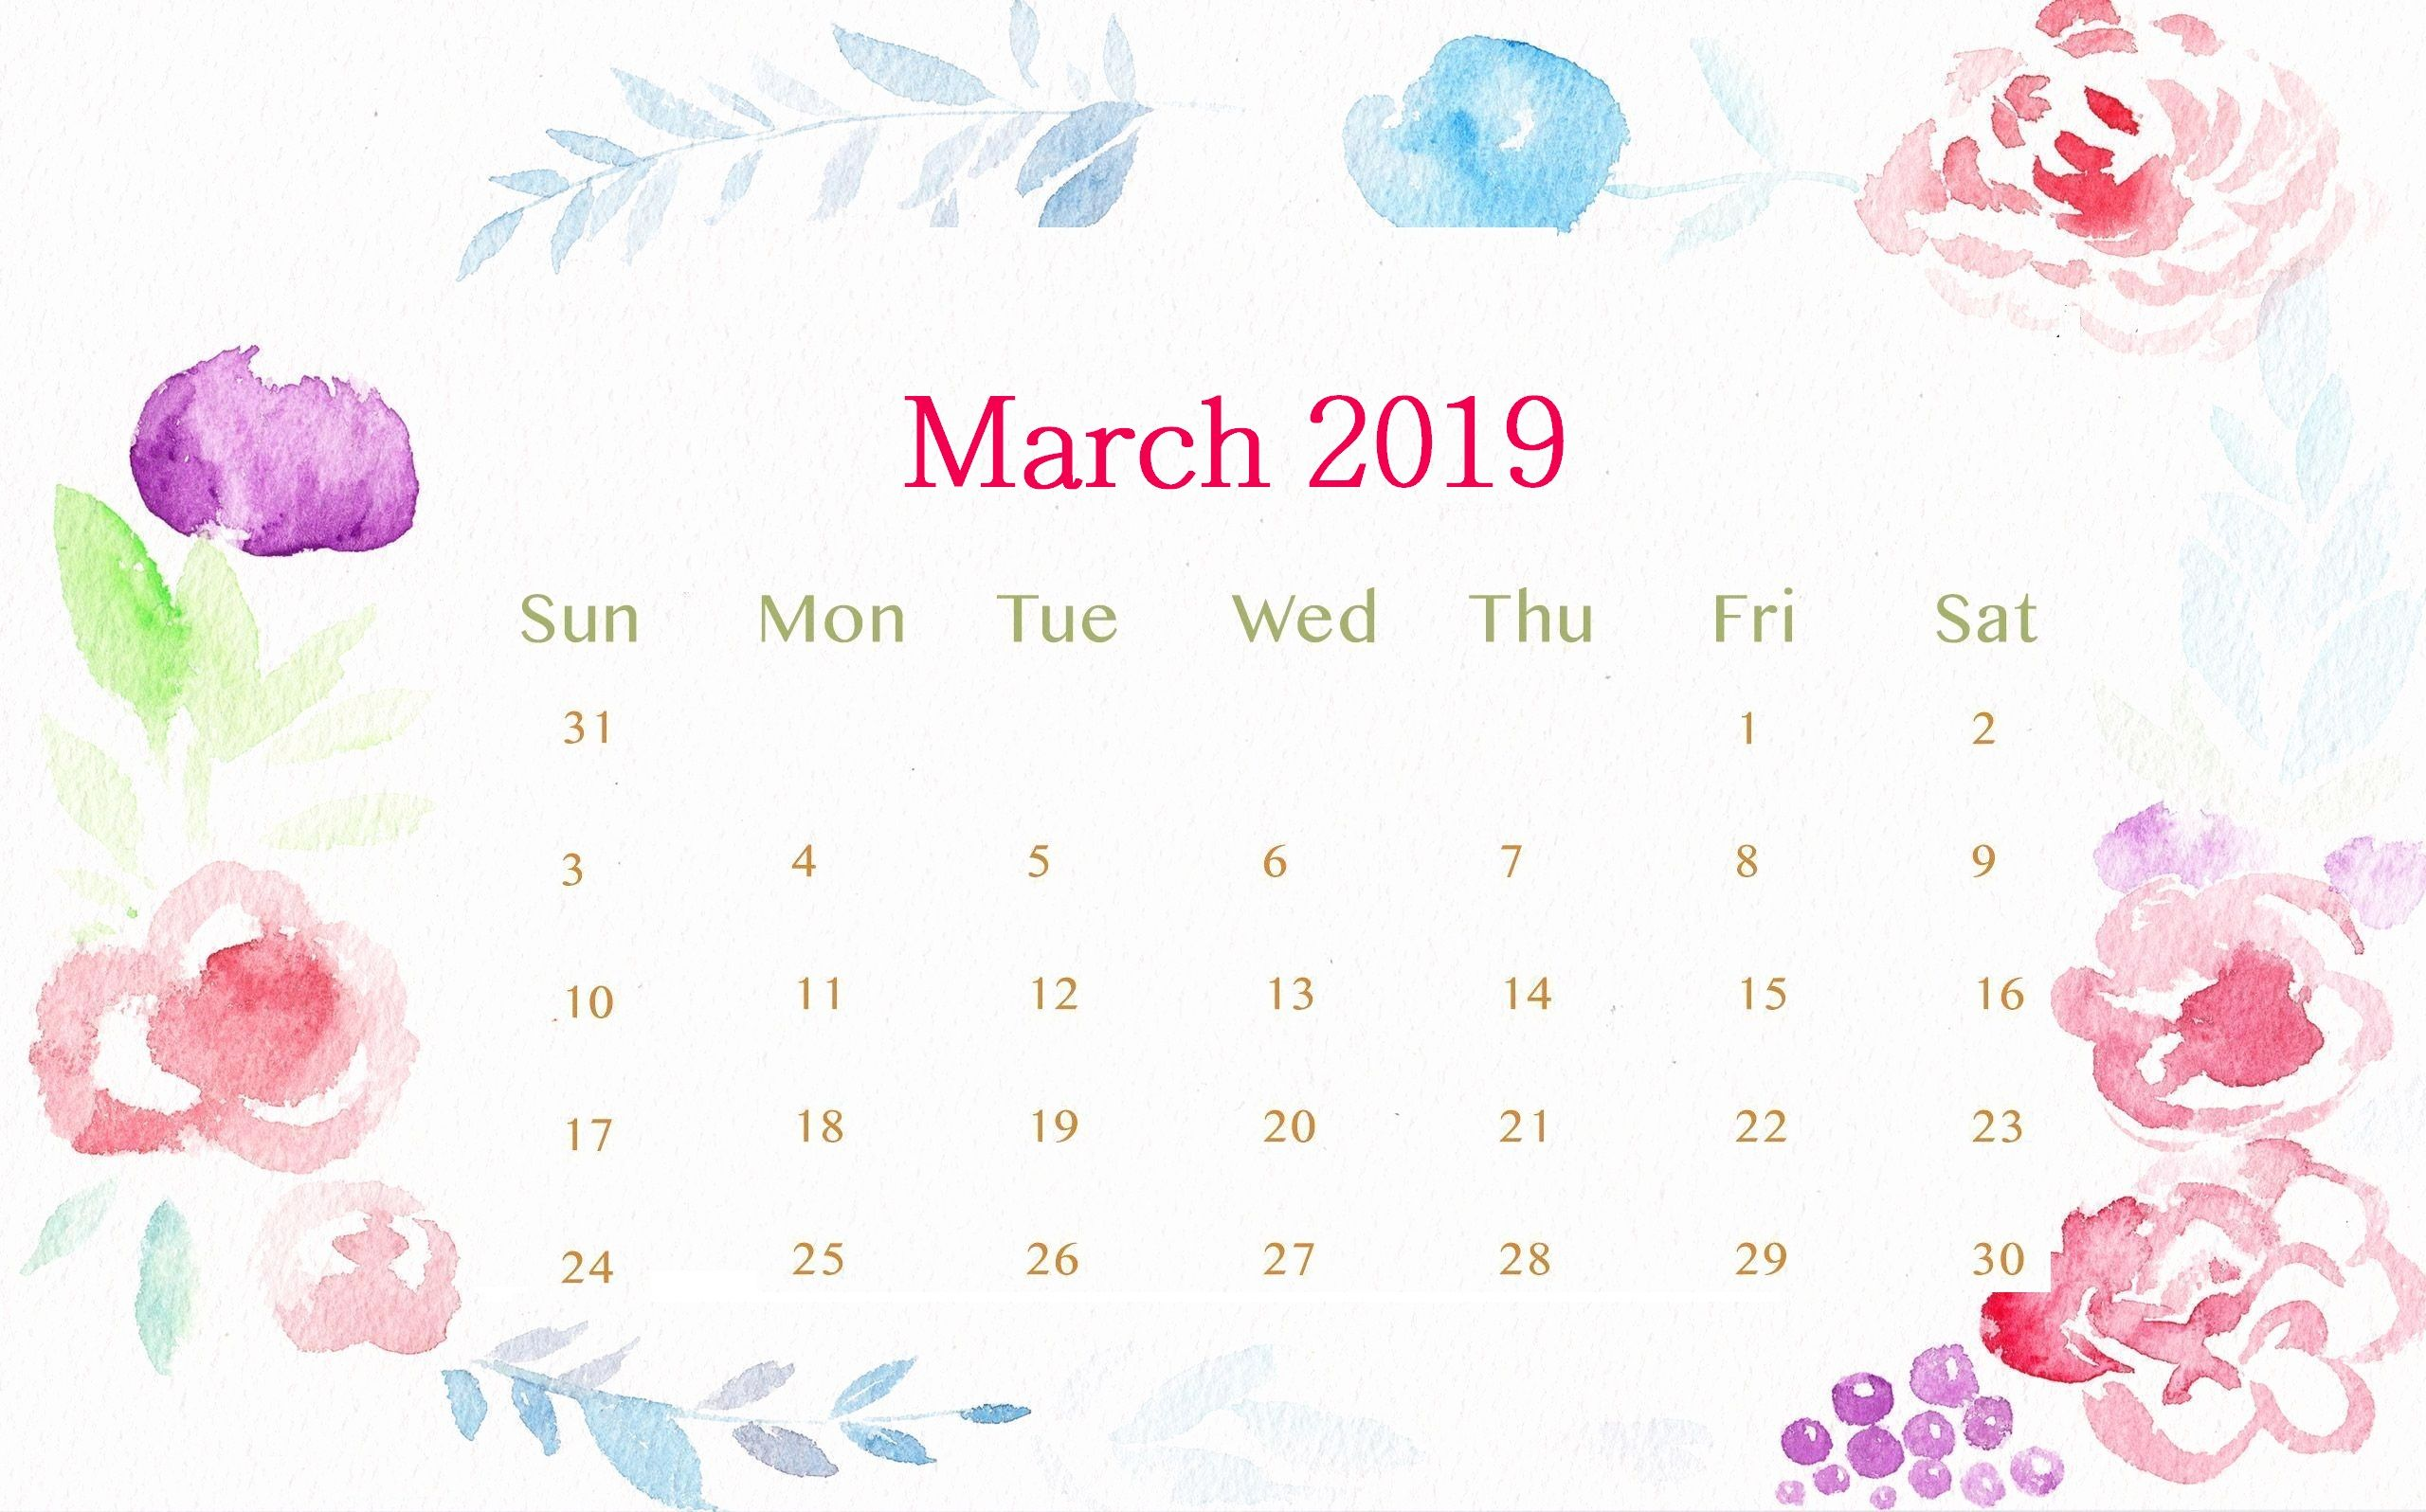 March 2019 Desktop Calendar Calendar Wallpaper Desktop Calendar Calendar Design